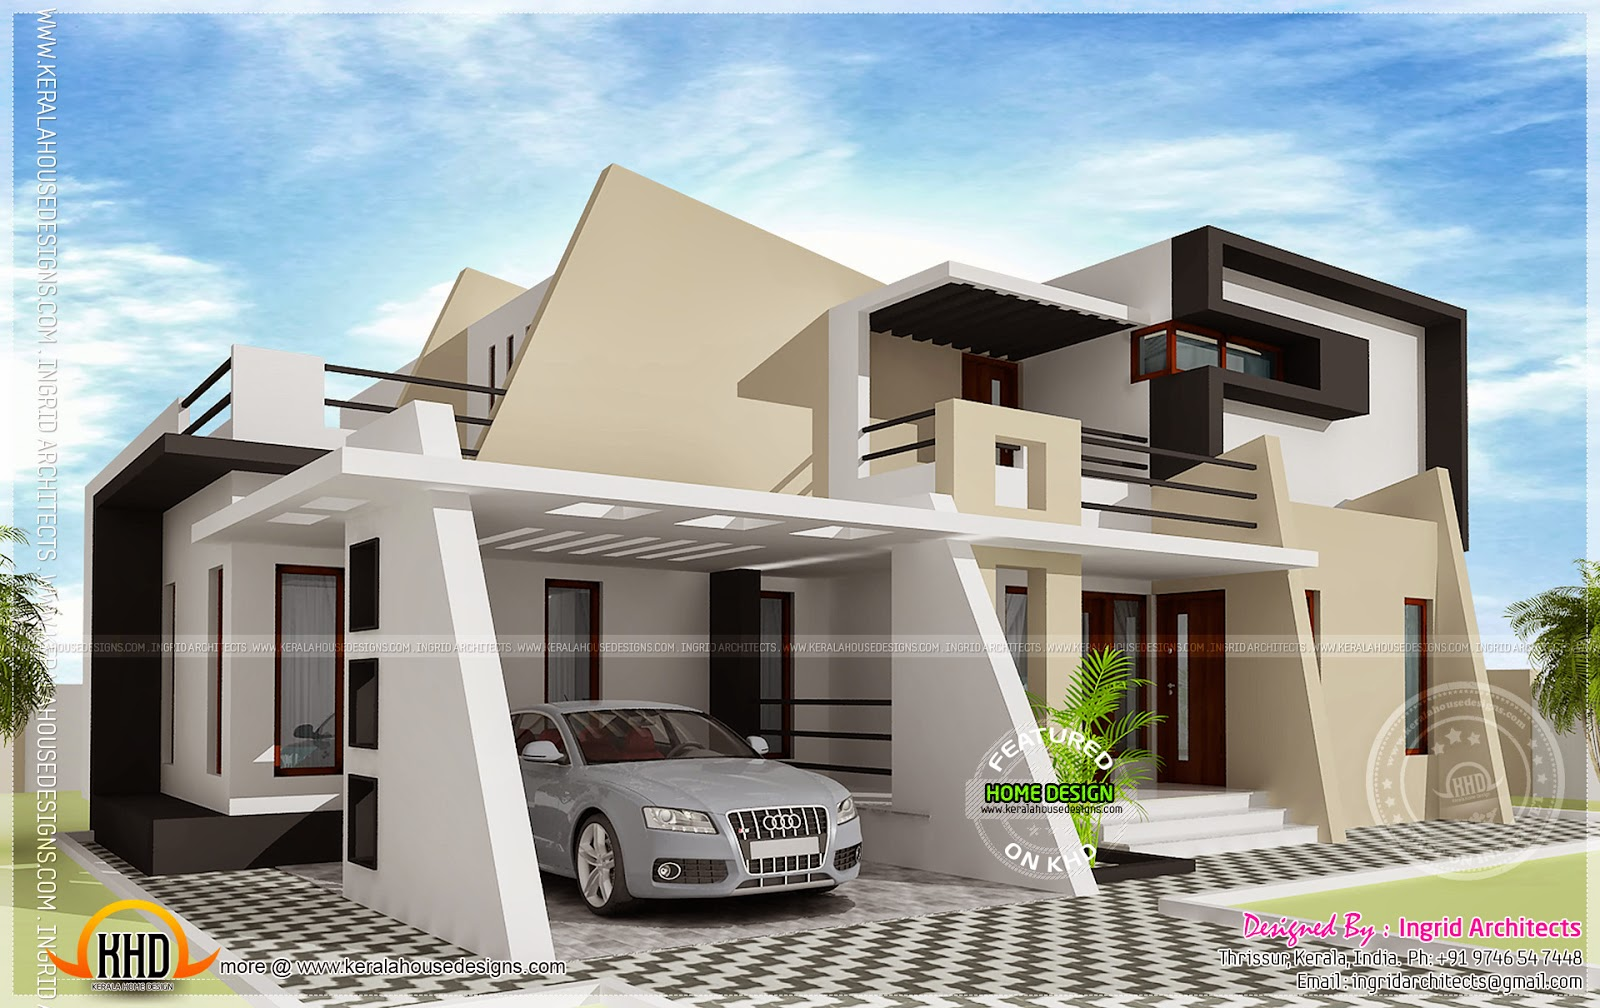 March 2014 kerala home design and floor plans for New house design